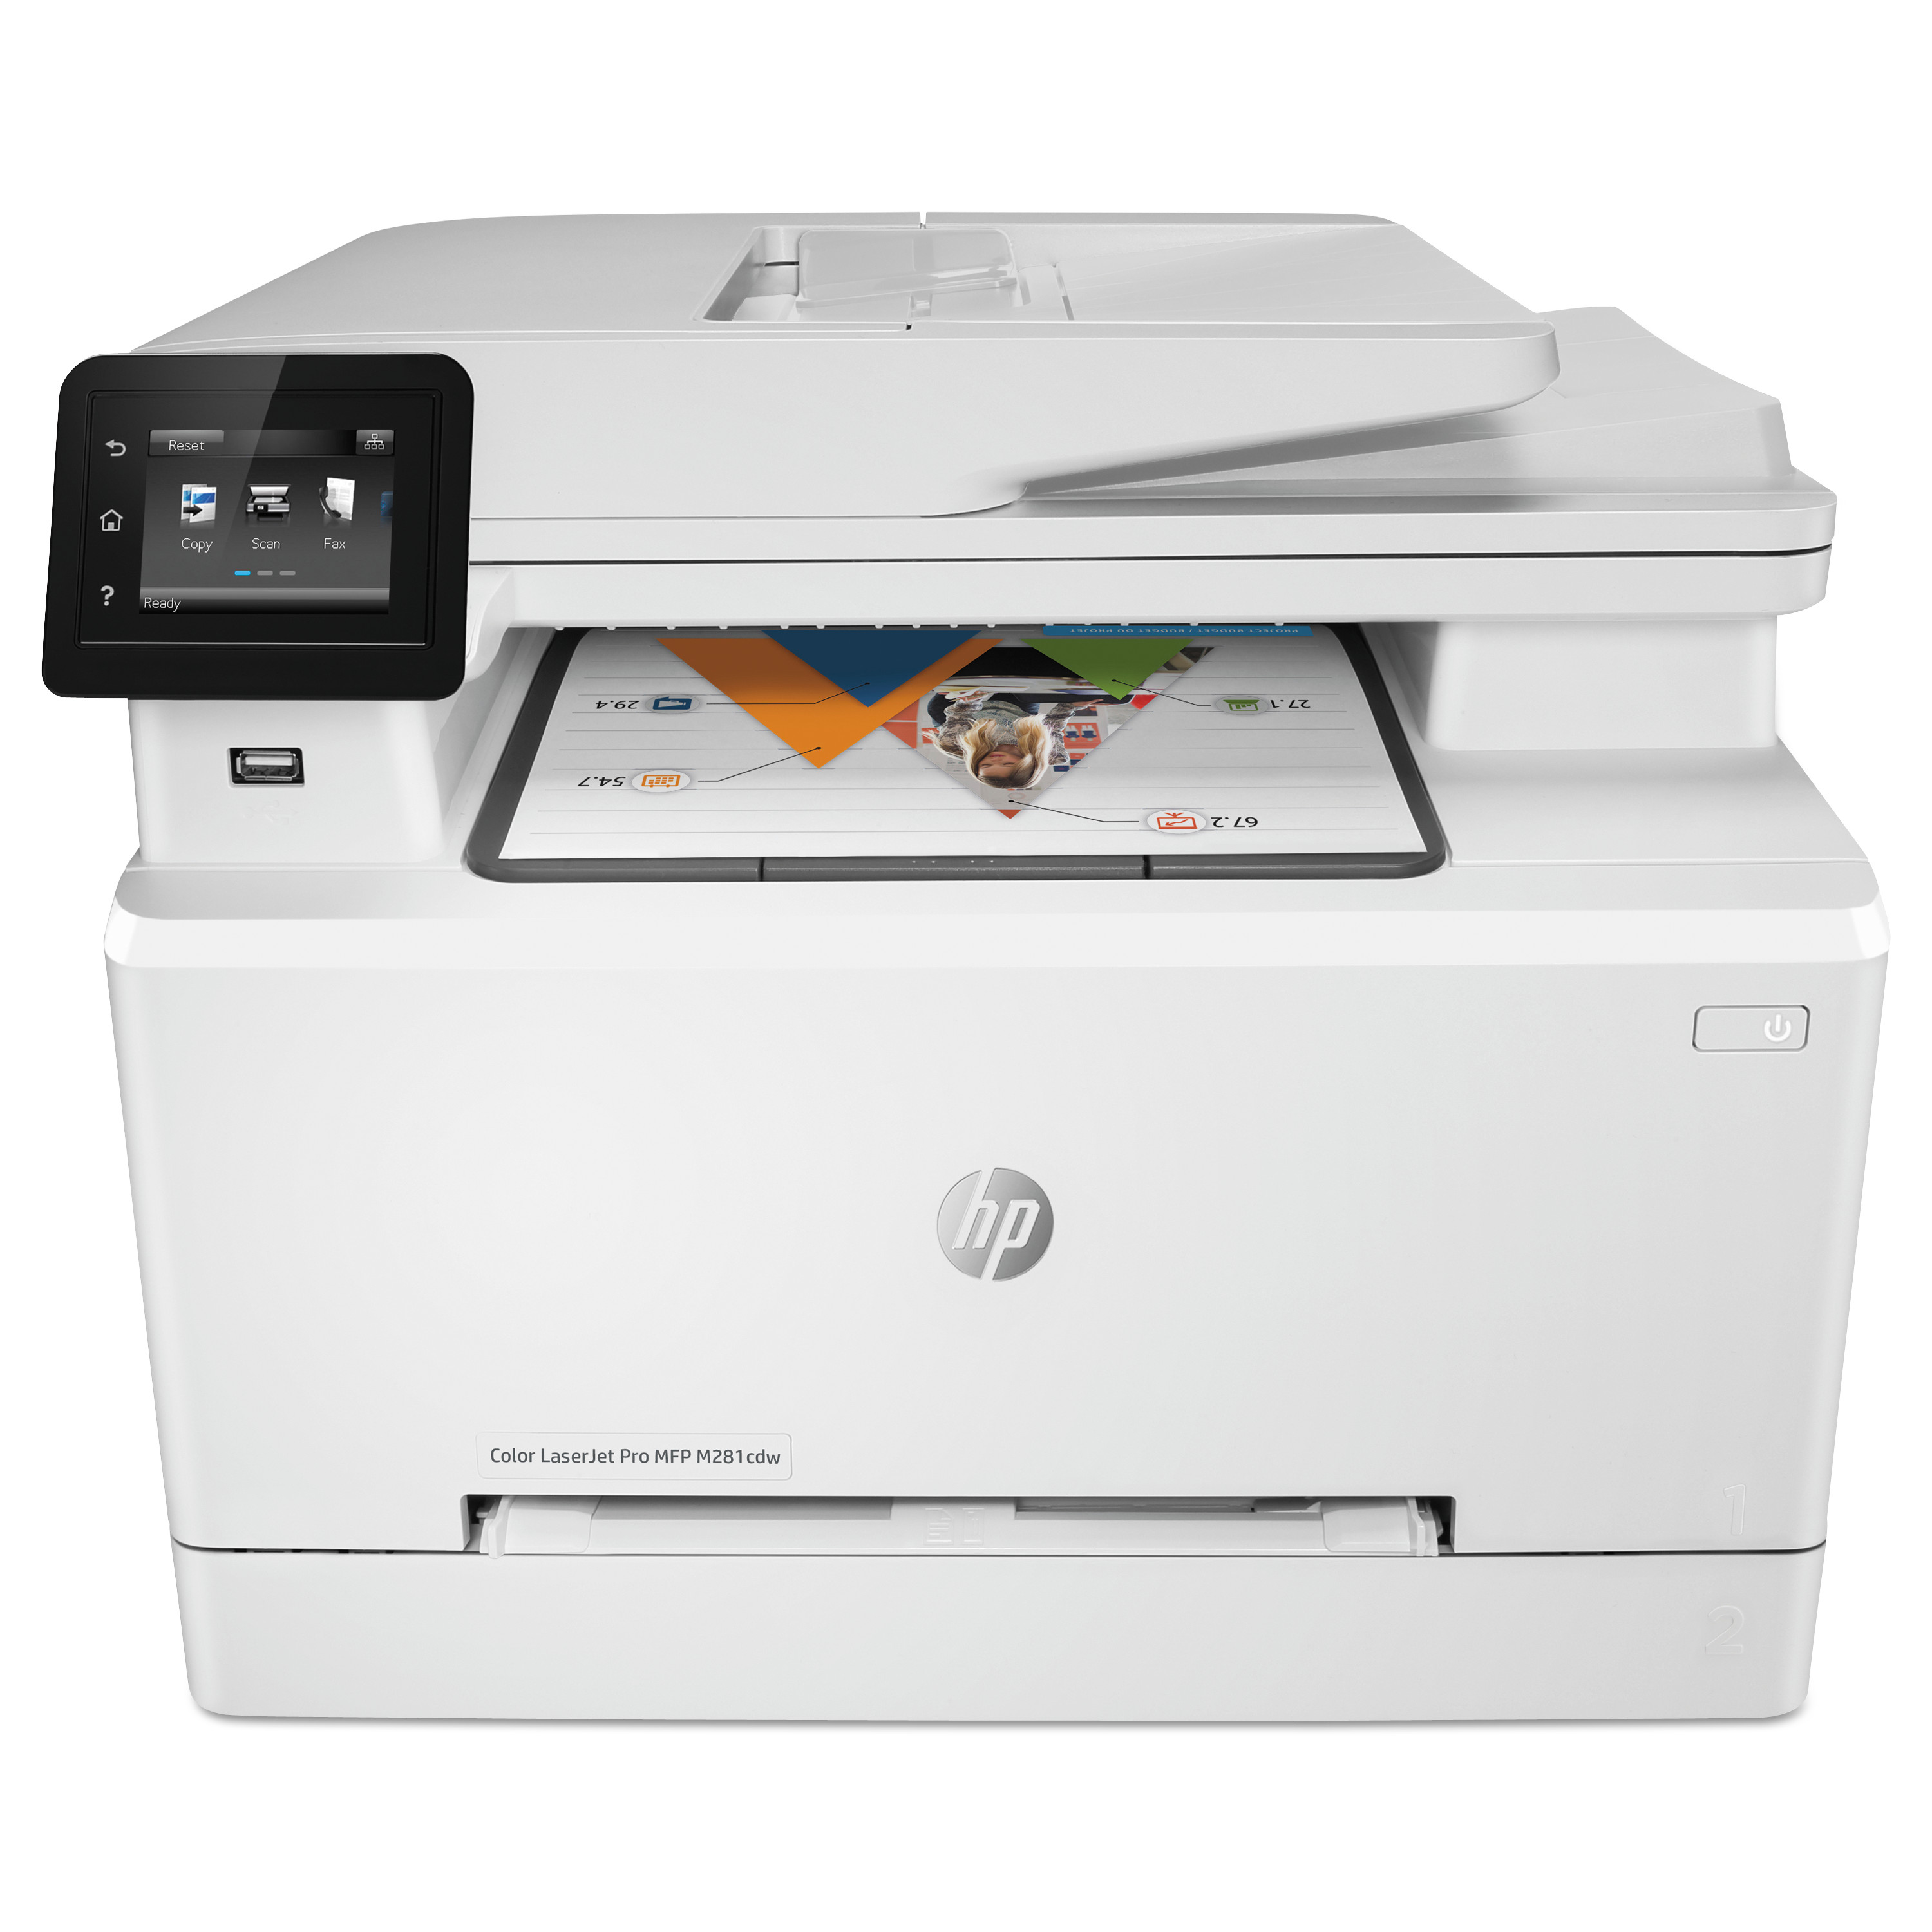 HP Color LaserJet Pro MFP M281fdw Multifunction Laser Printer, Copy/Fax/Print/Scan